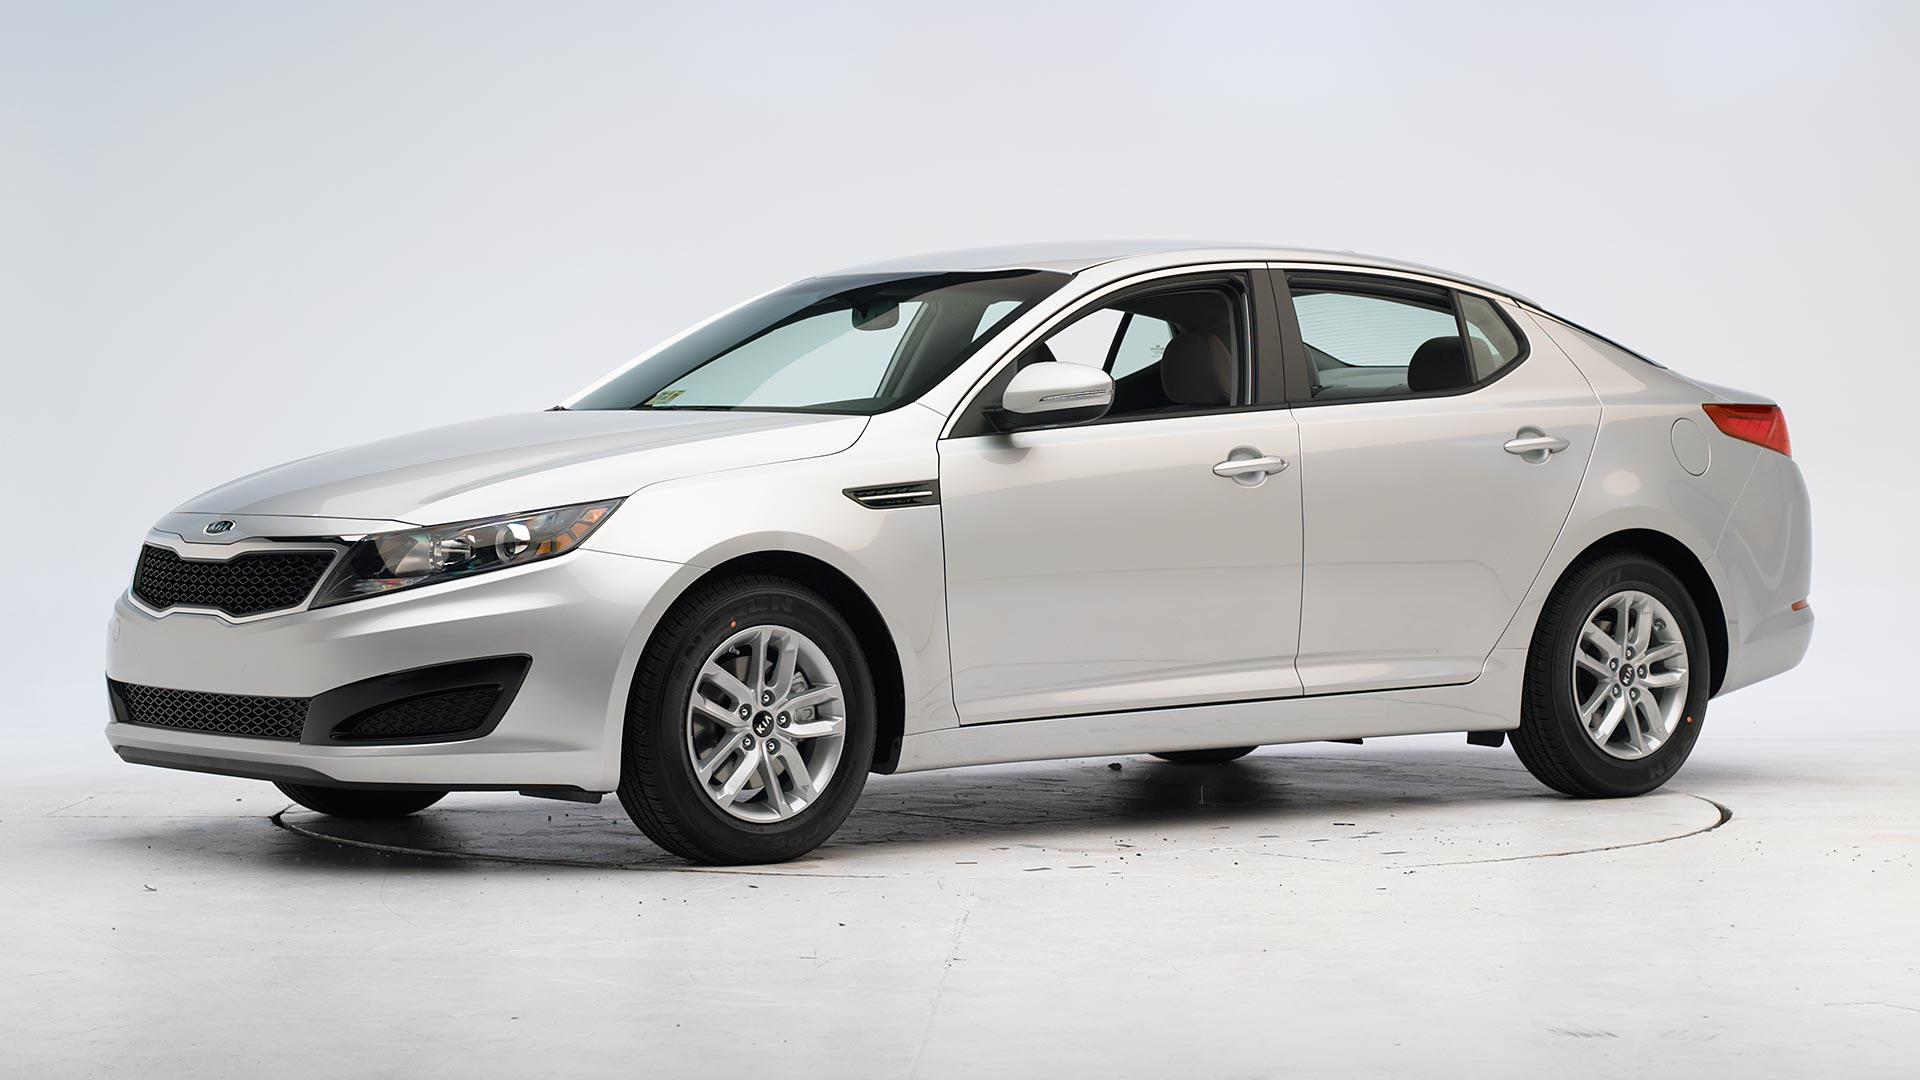 2011 Kia Optima 4-door sedan